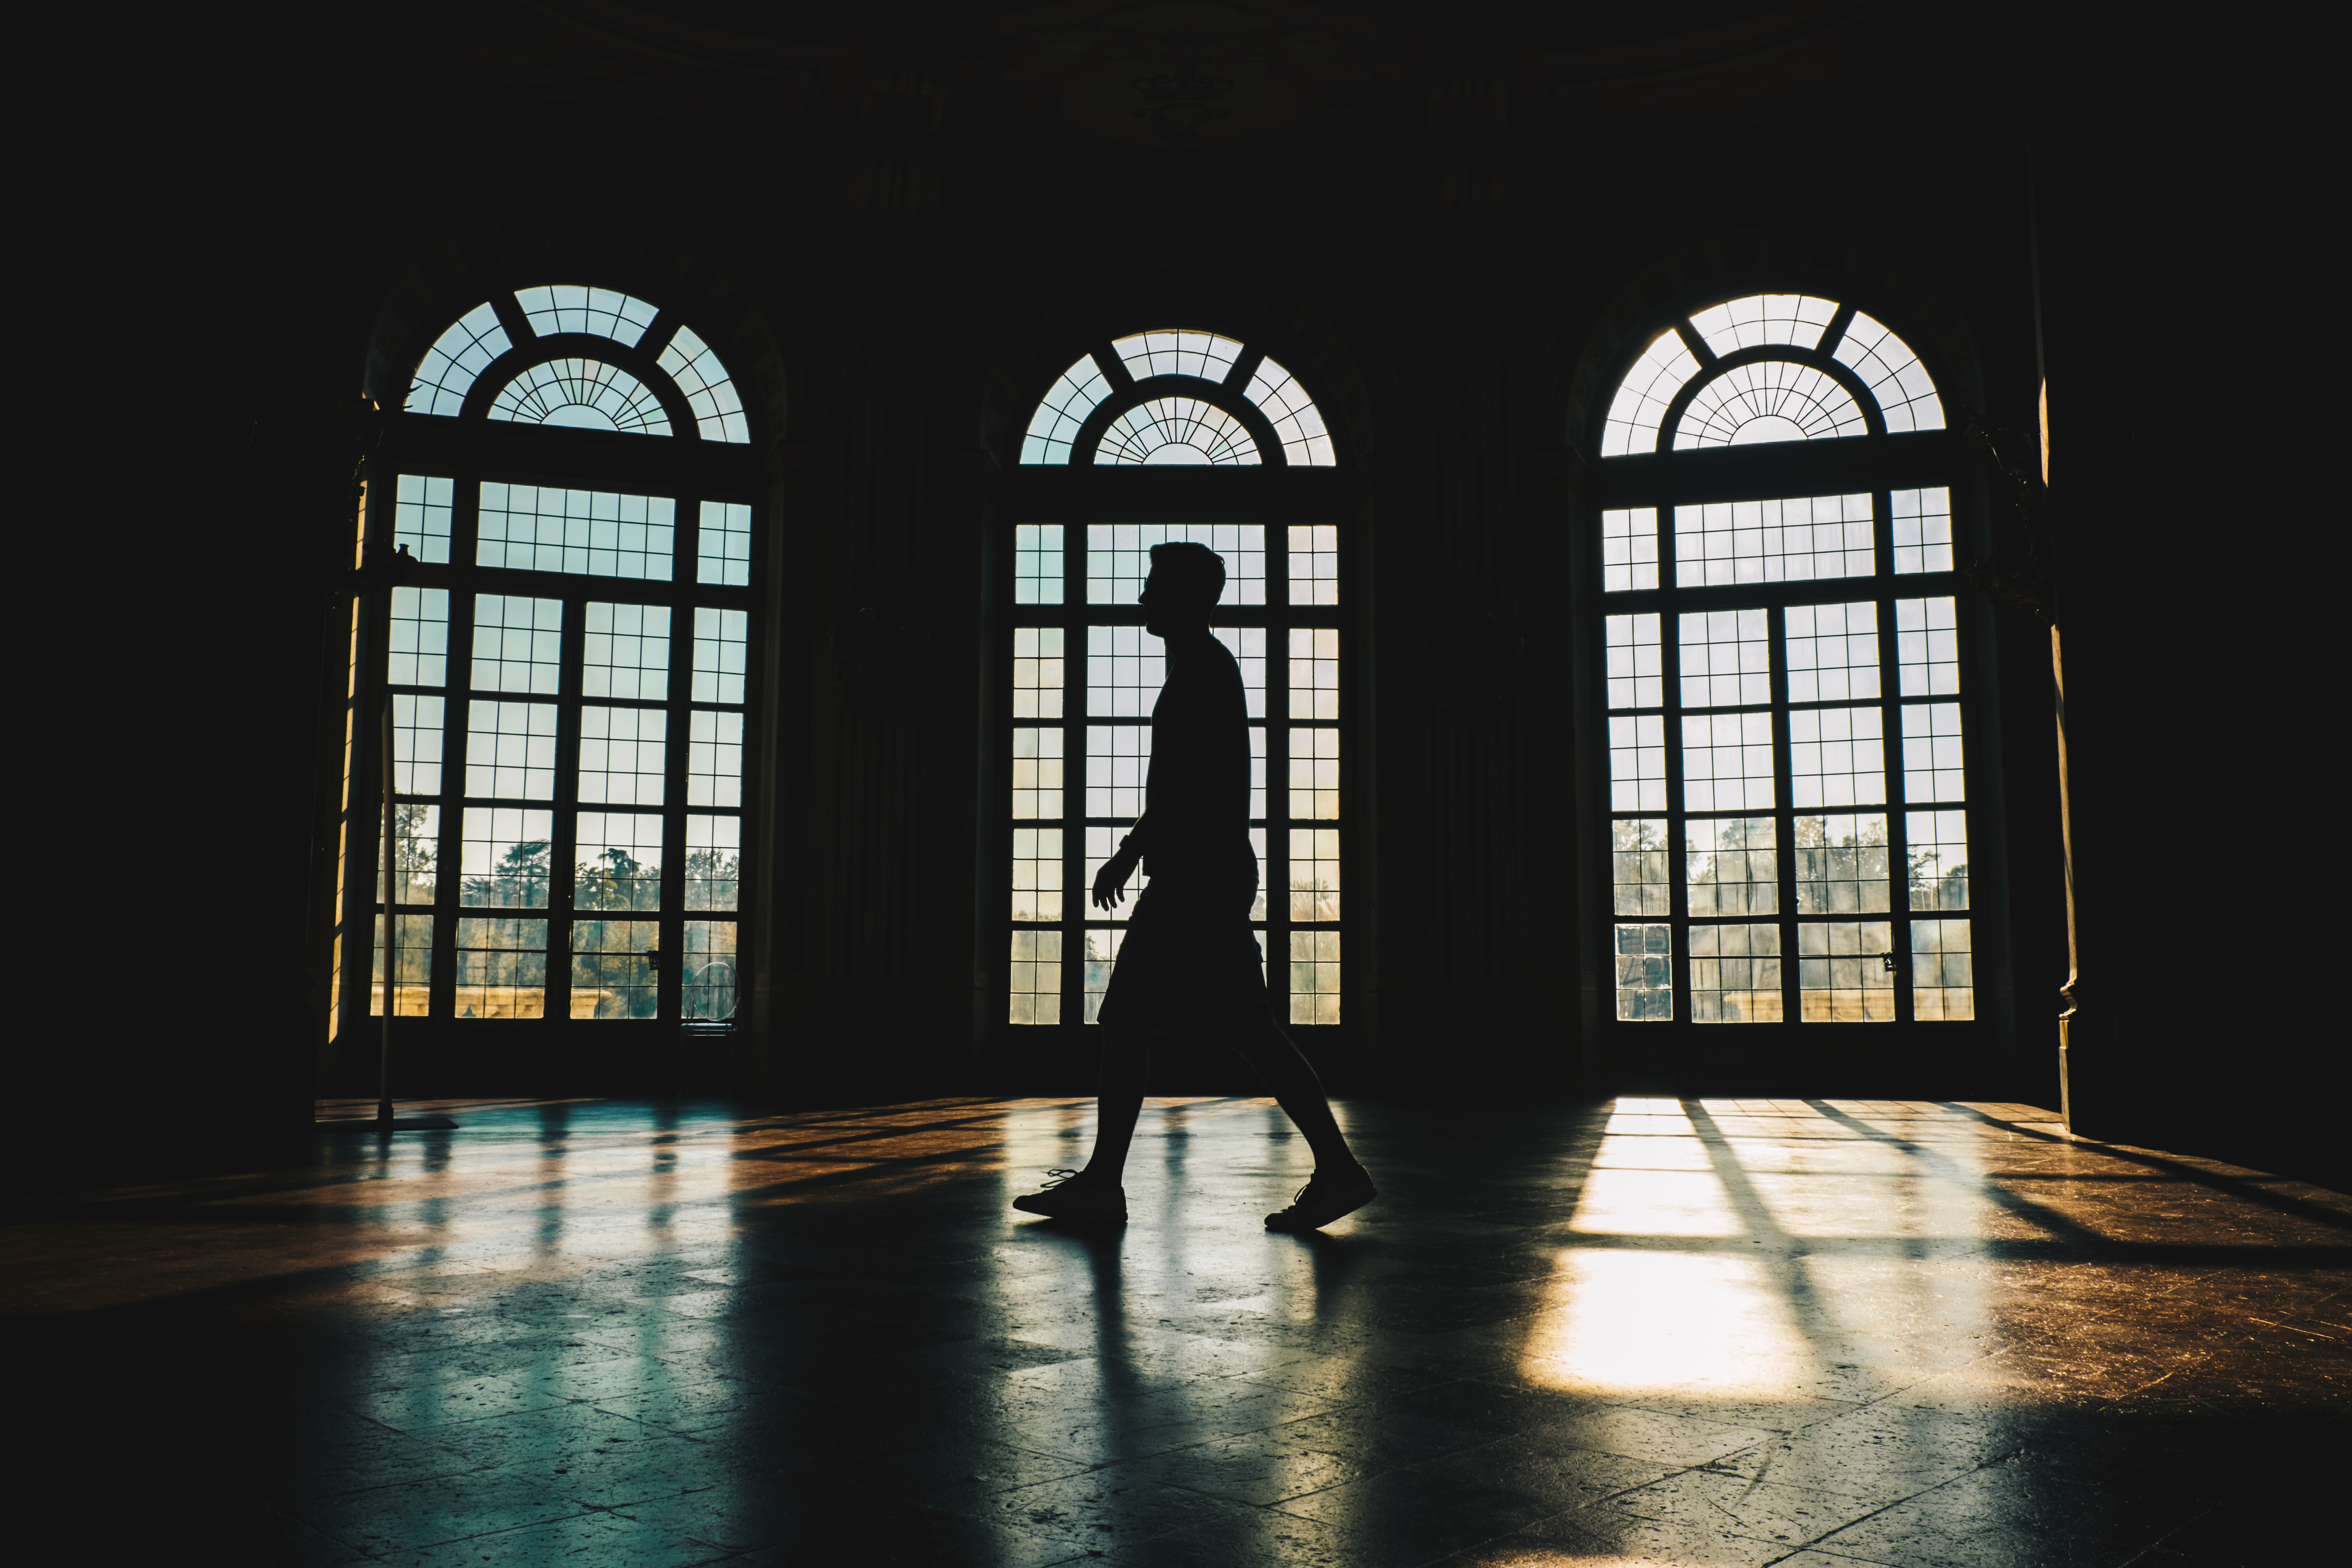 silhouette of person inside building